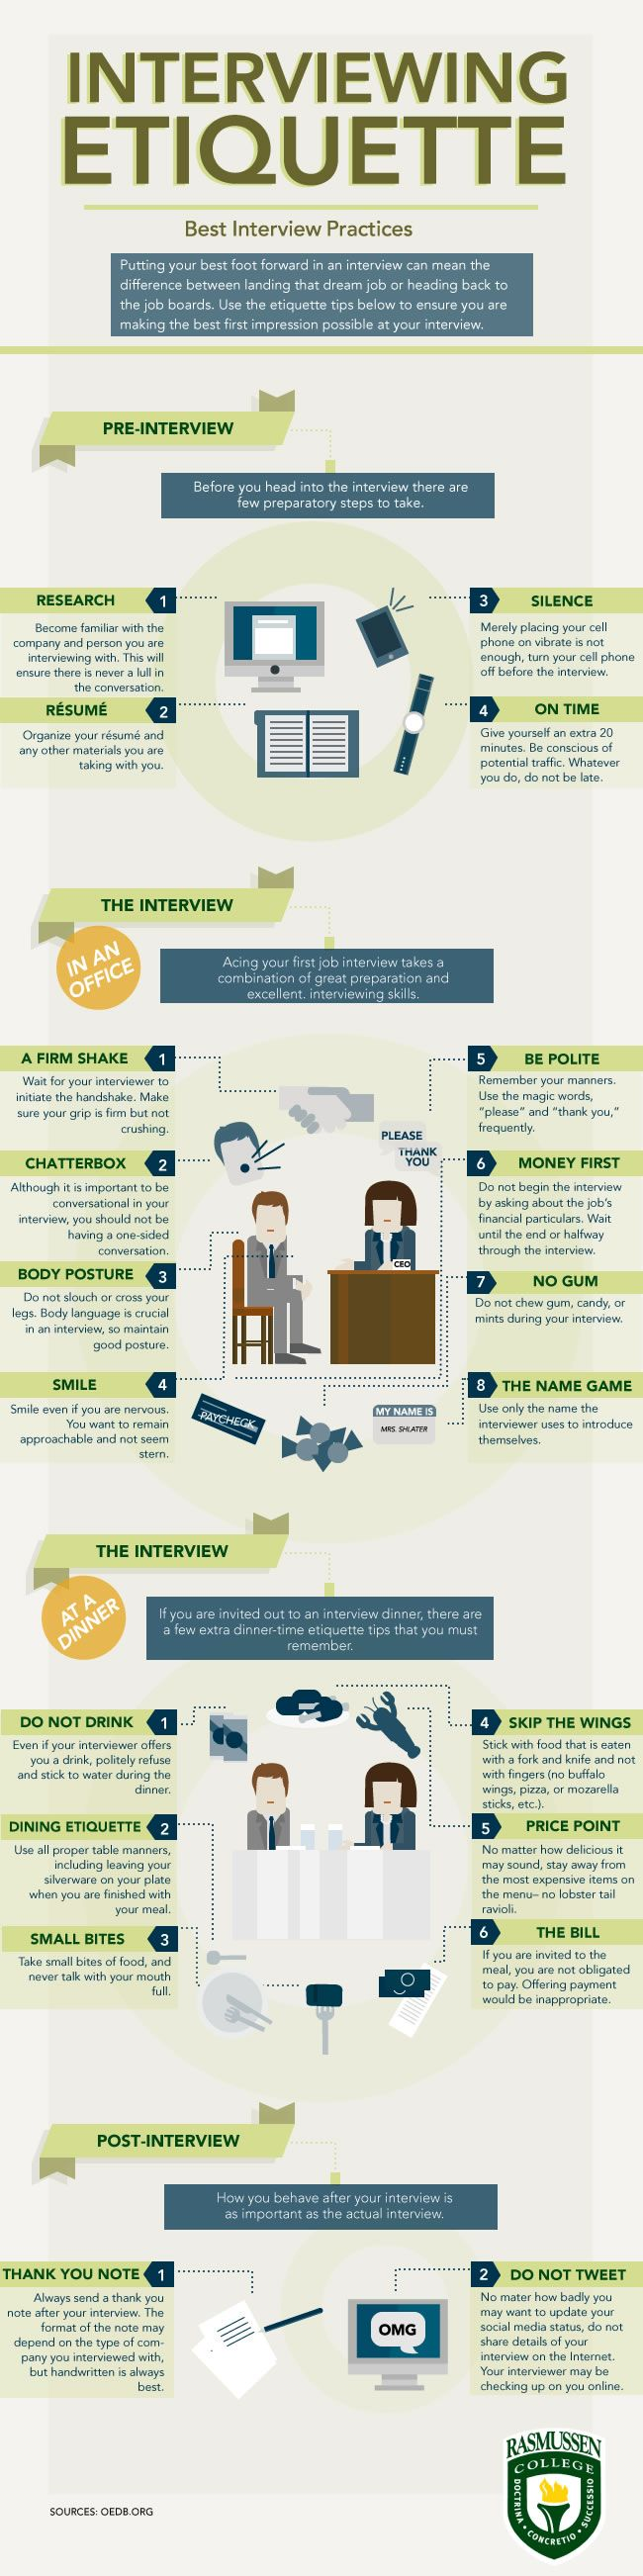 I picked this one because it tells you how to use these etiquette tips for interviews to ensure you are making the best impression possible to your prospective employer. #interview #etiquette